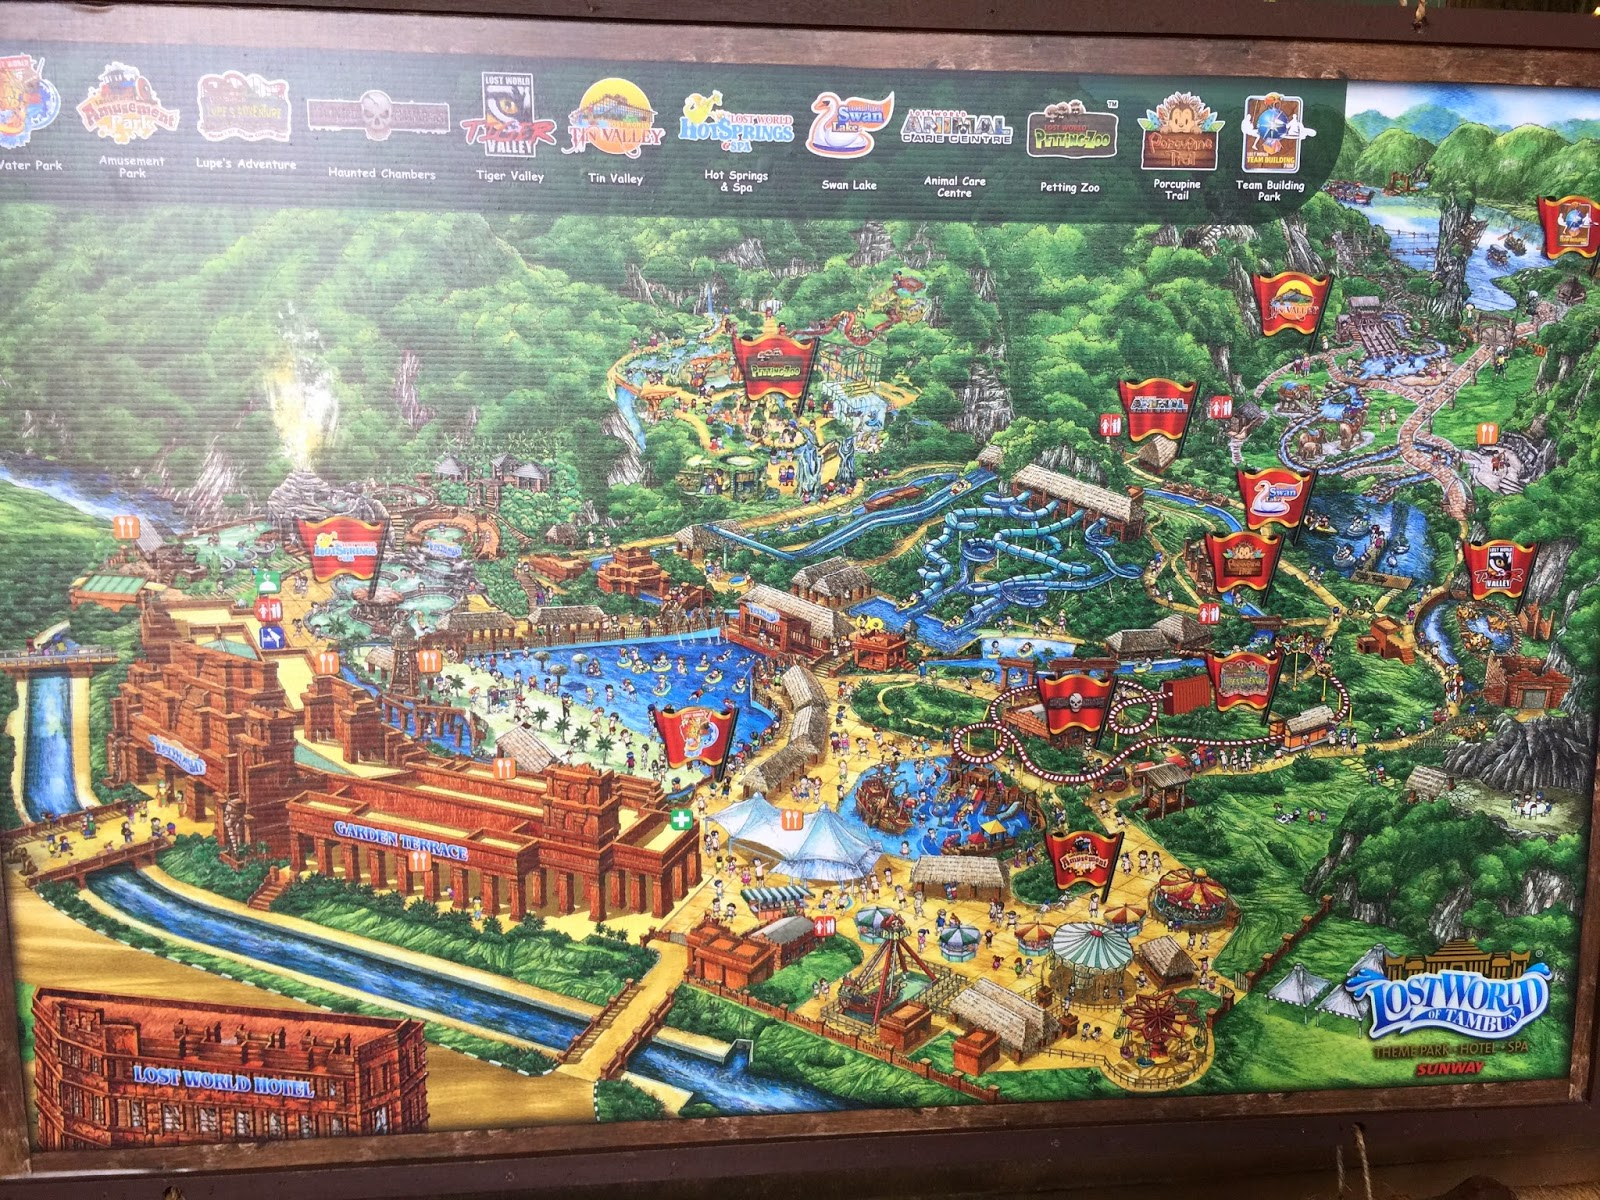 Map to lost world of tambun lost world of tambun img 8749g 97350ia43cfe70fb2cf8aa0bbdd5bb1f147304 gumiabroncs Choice Image